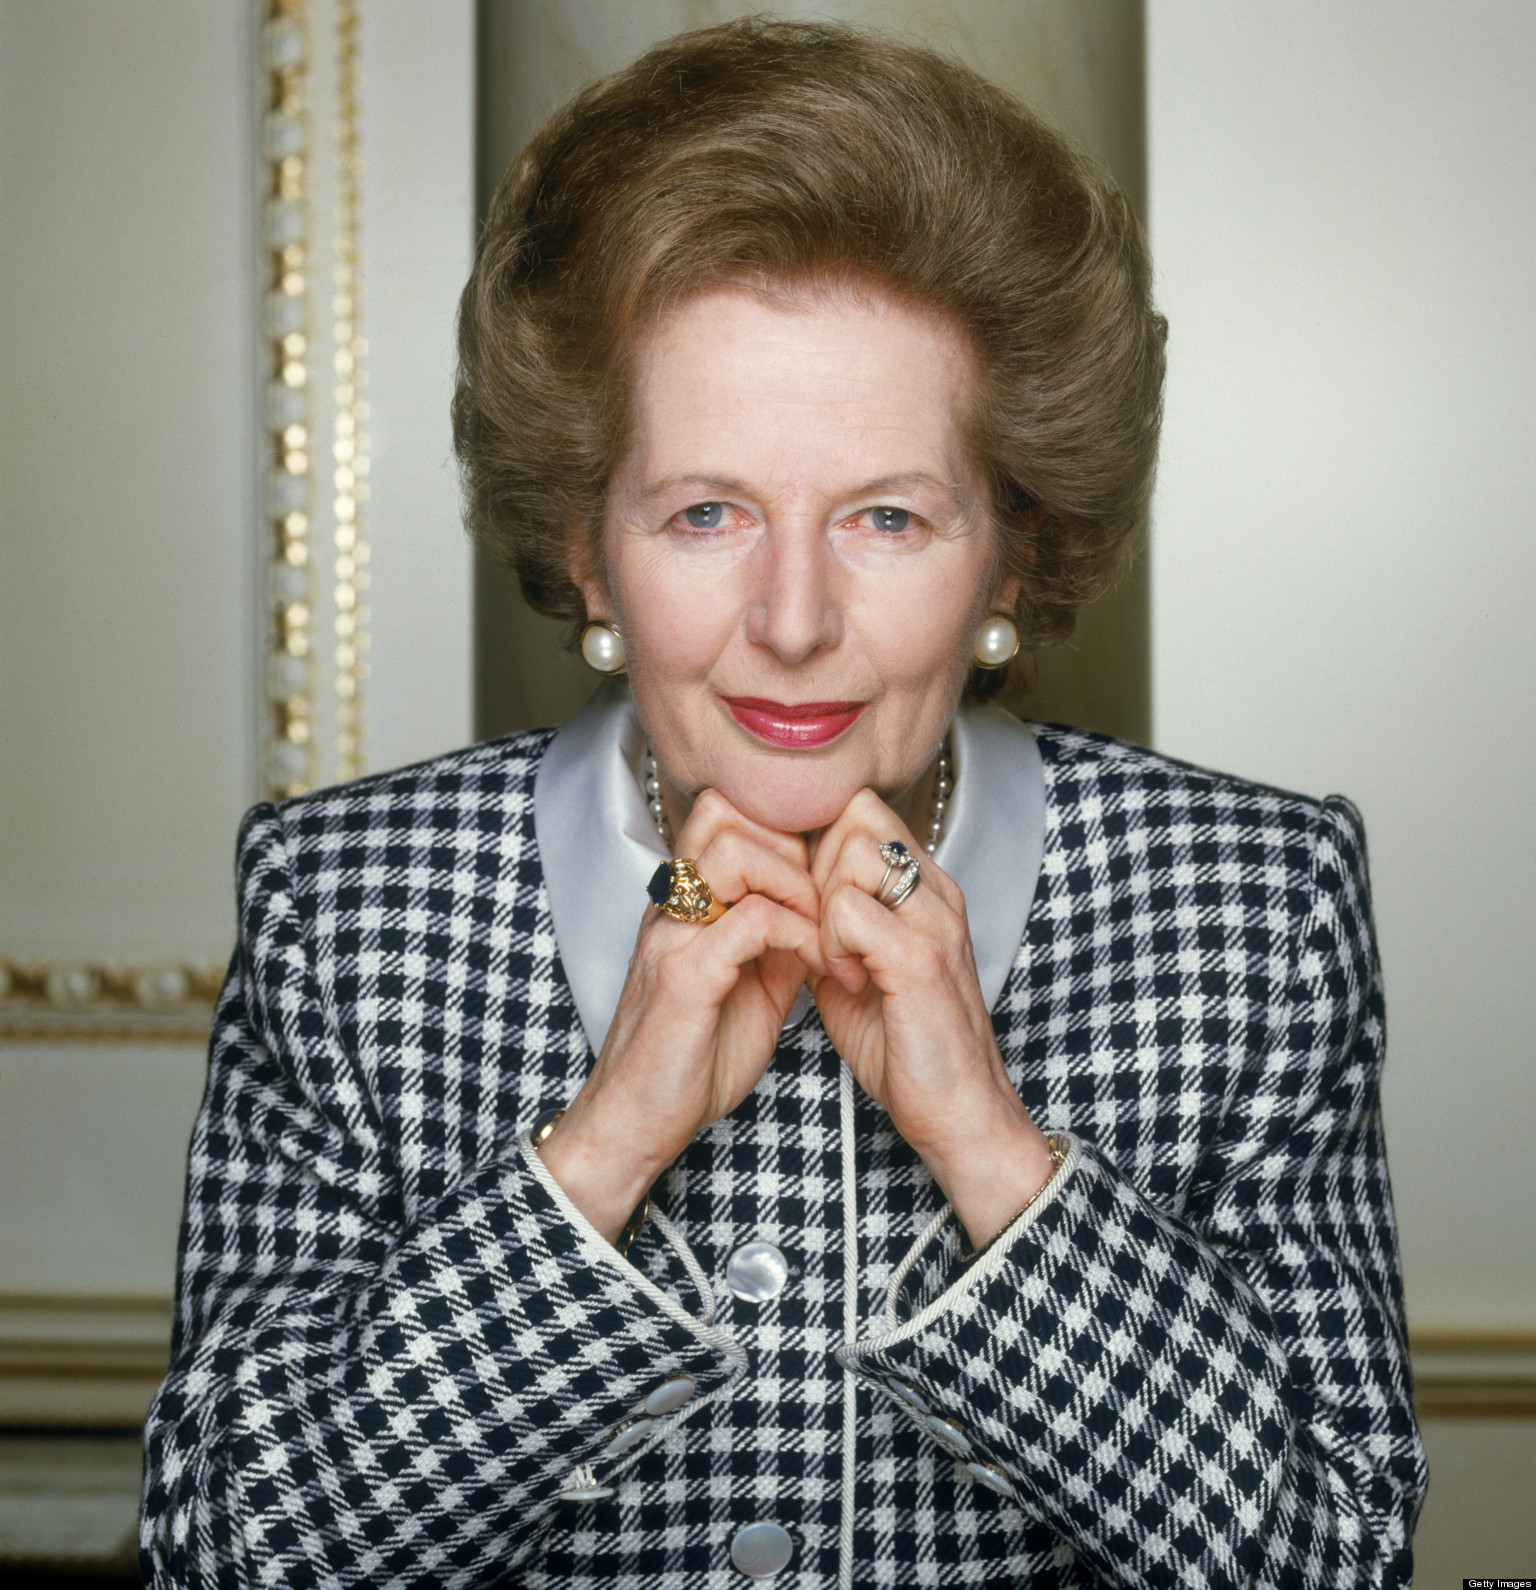 Margaret Thatcher Quotes Live On After Iron Lady Dies At 87 | HuffPost